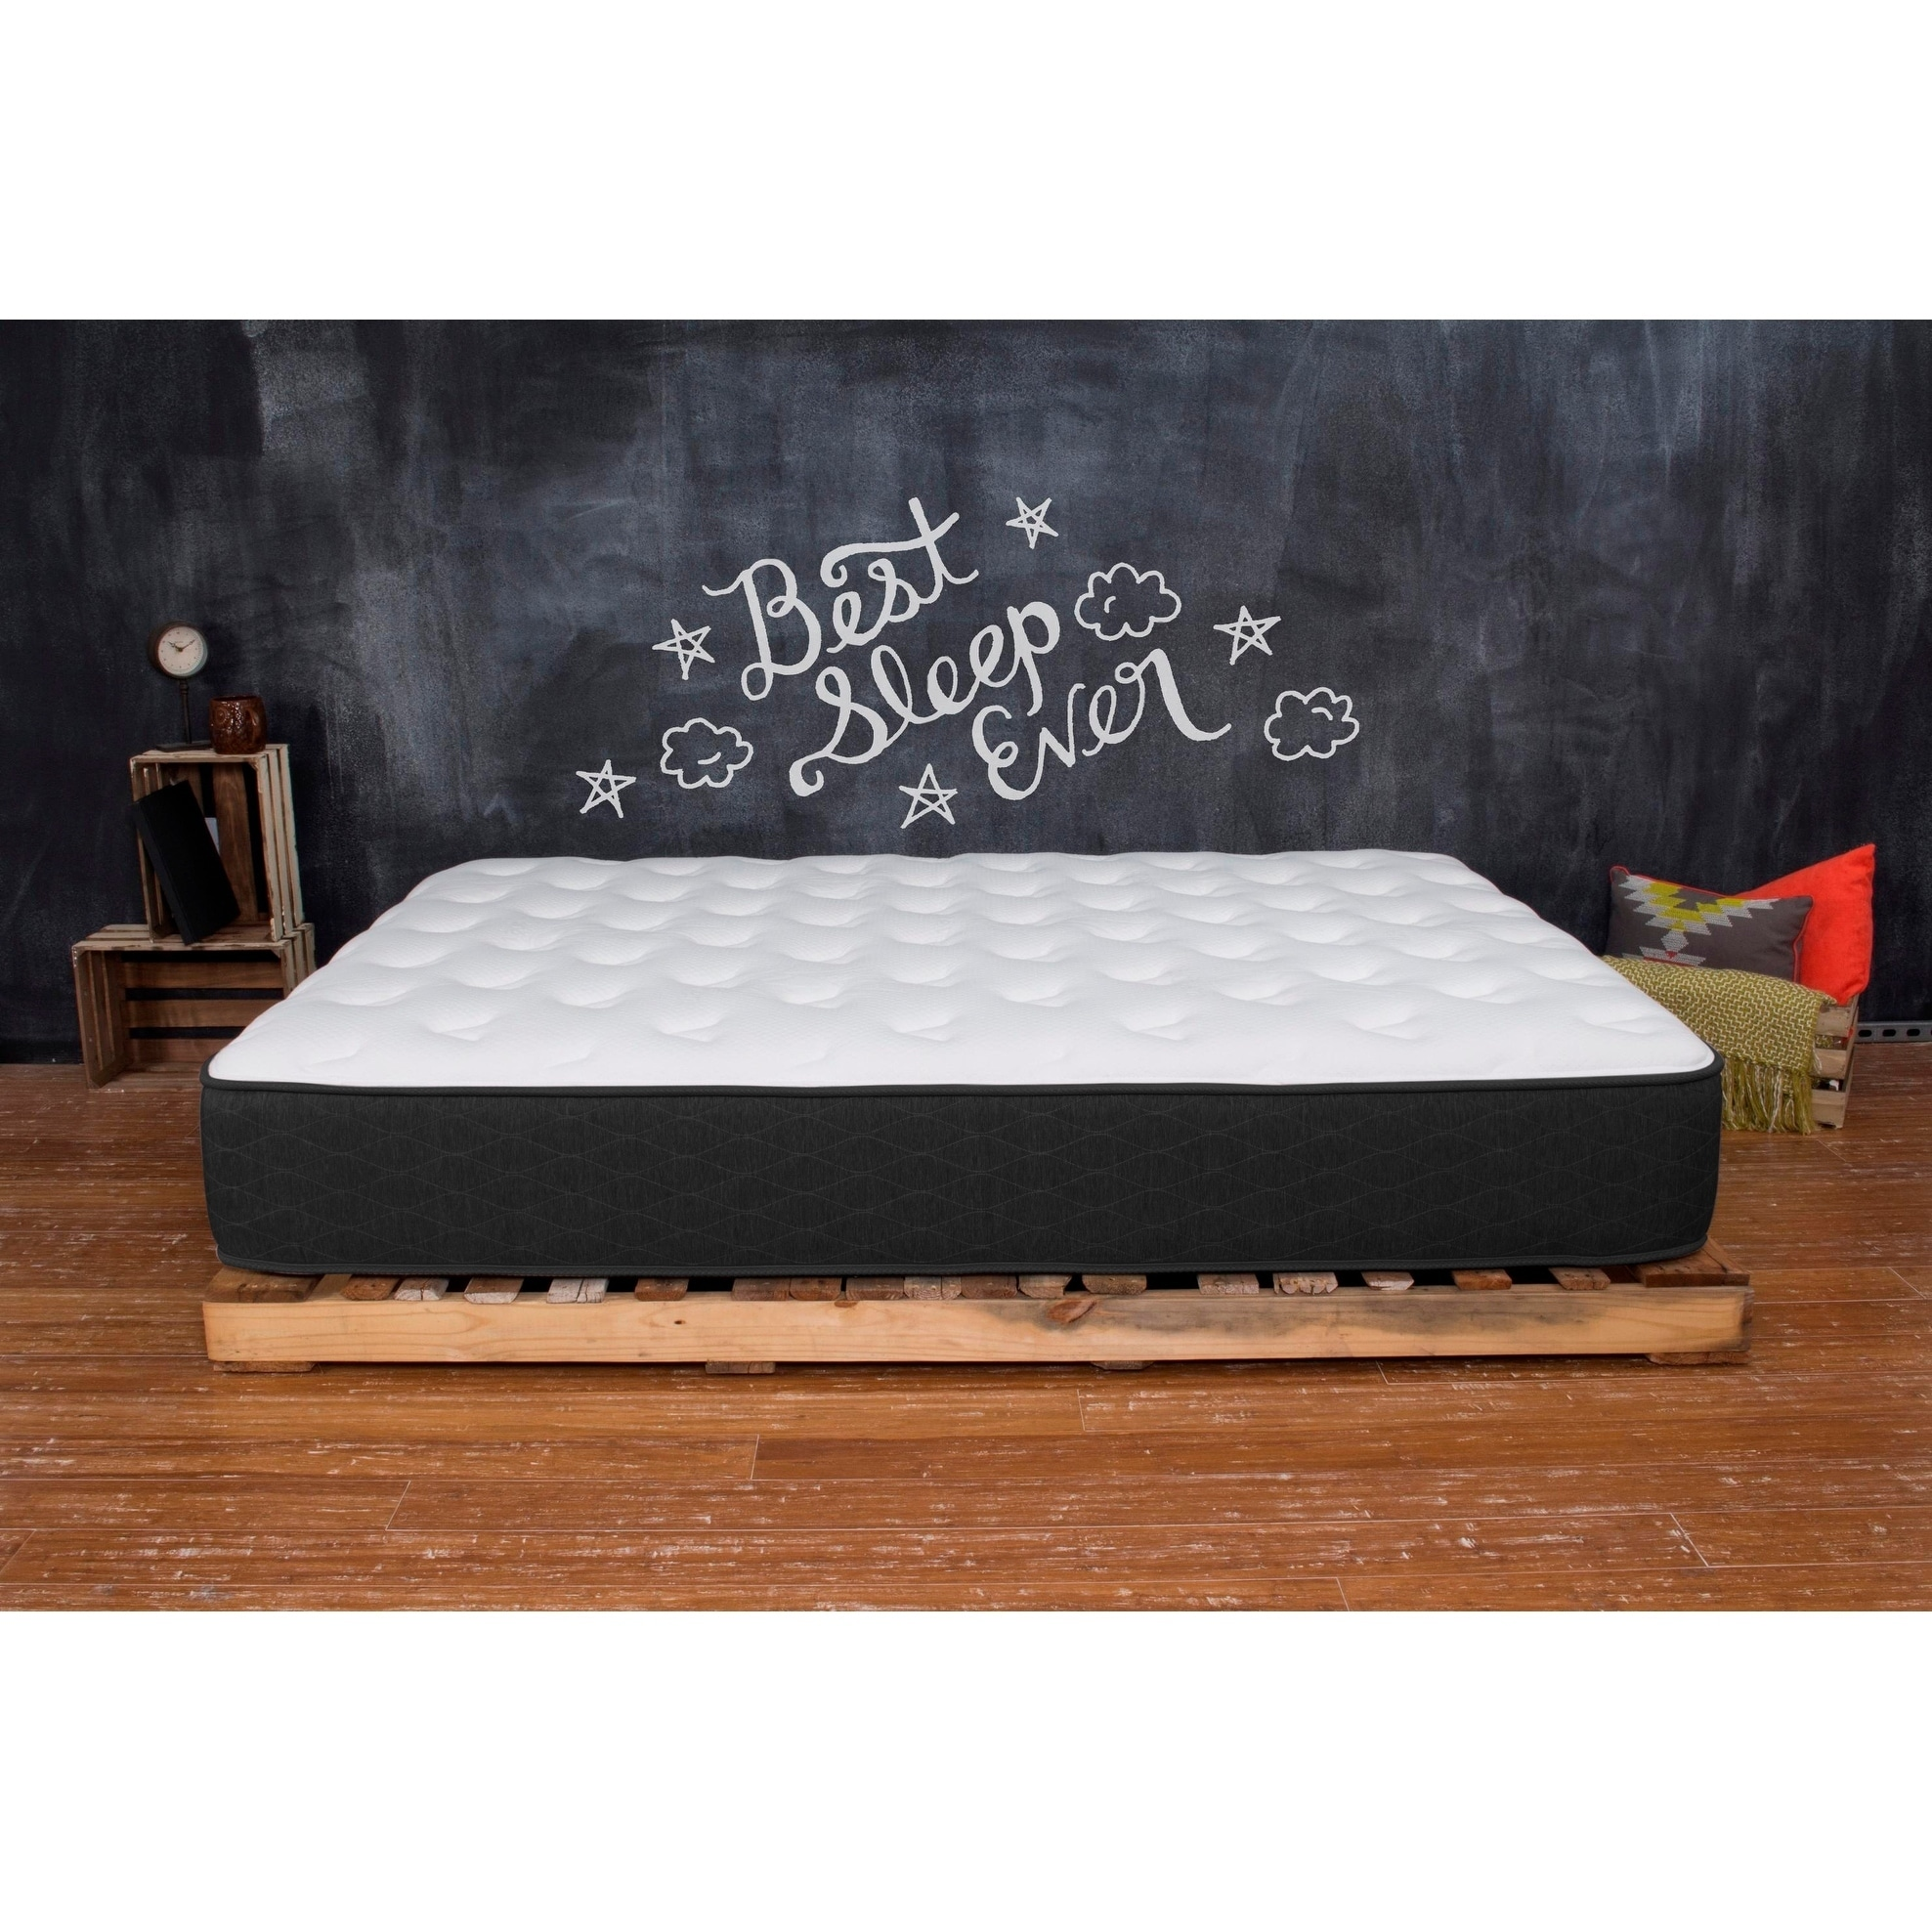 Best Memory Foam Mattress 8 Queen Mattress Plush Bed In A Box Sleep Overstock 17612260